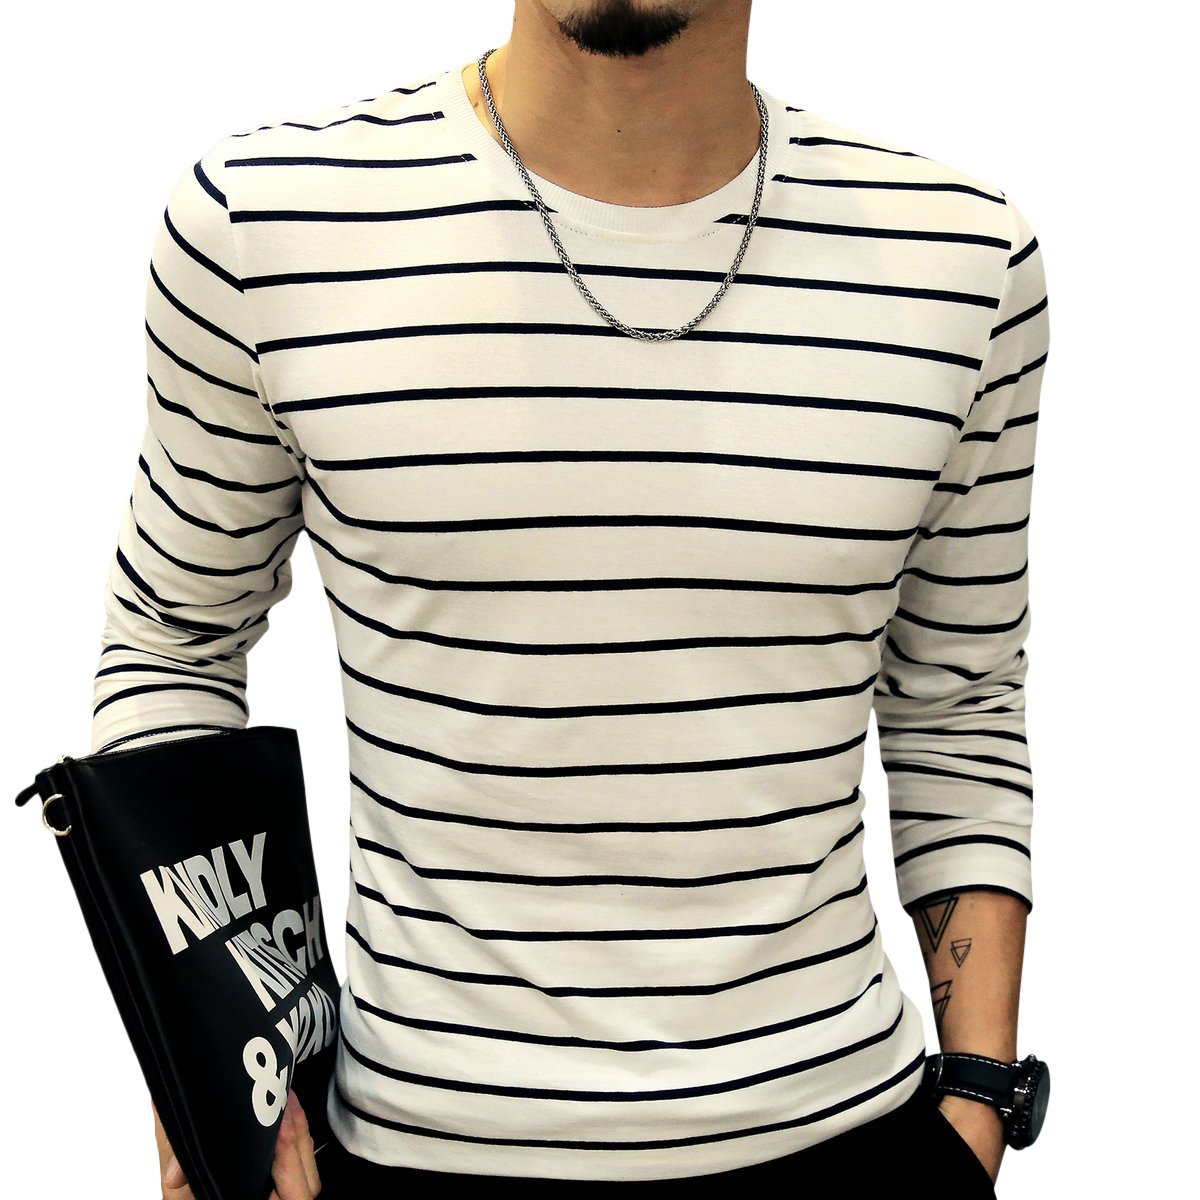 LOGEEYAR Mens Long-Sleeve Cotton Fitted Contrast Color Stitching Stripe Slim T-Shirt (White,M) by LOGEEYAR (Image #3)